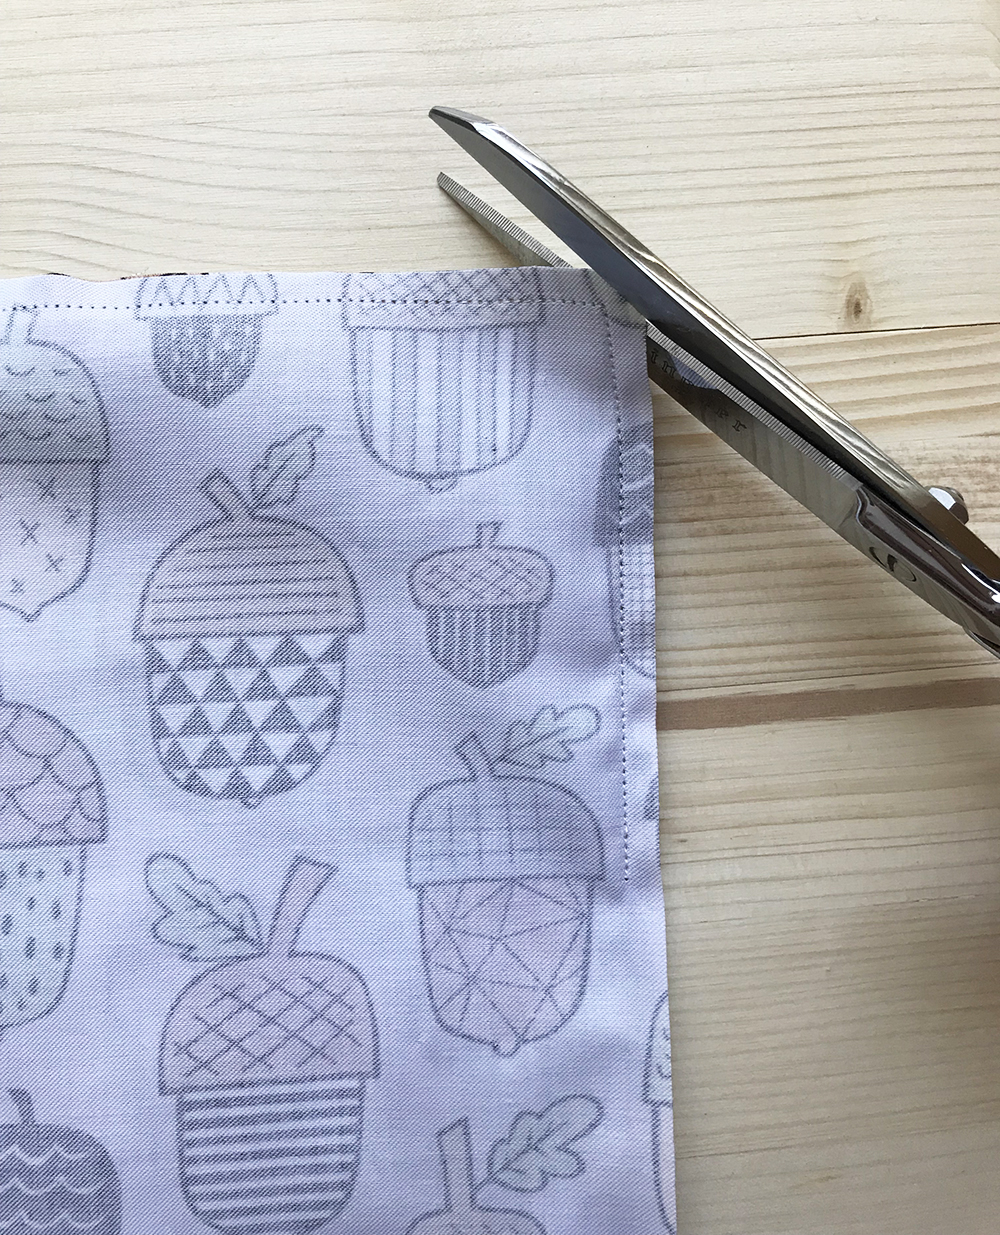 Trim the corners of the placemat | Spoonflower Blog